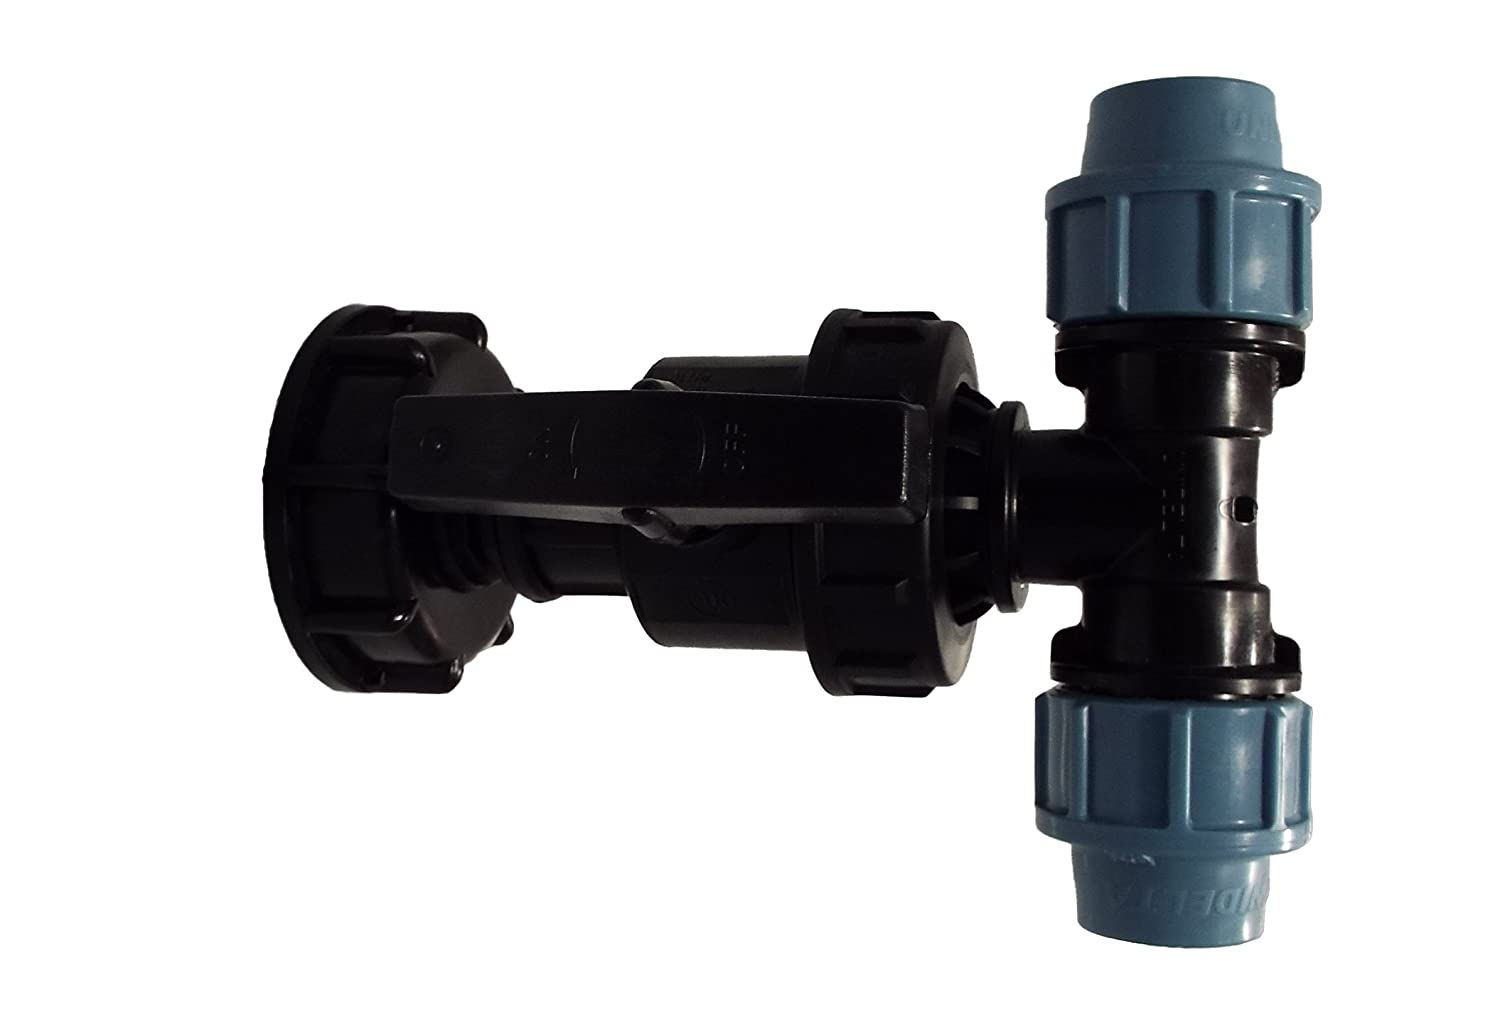 IBC TANK S60X6 ADAPTER TO MDPE WATER PIPE FITTINGS by Cost Wise® ,the irrigation specialists (20MM ELBOW)